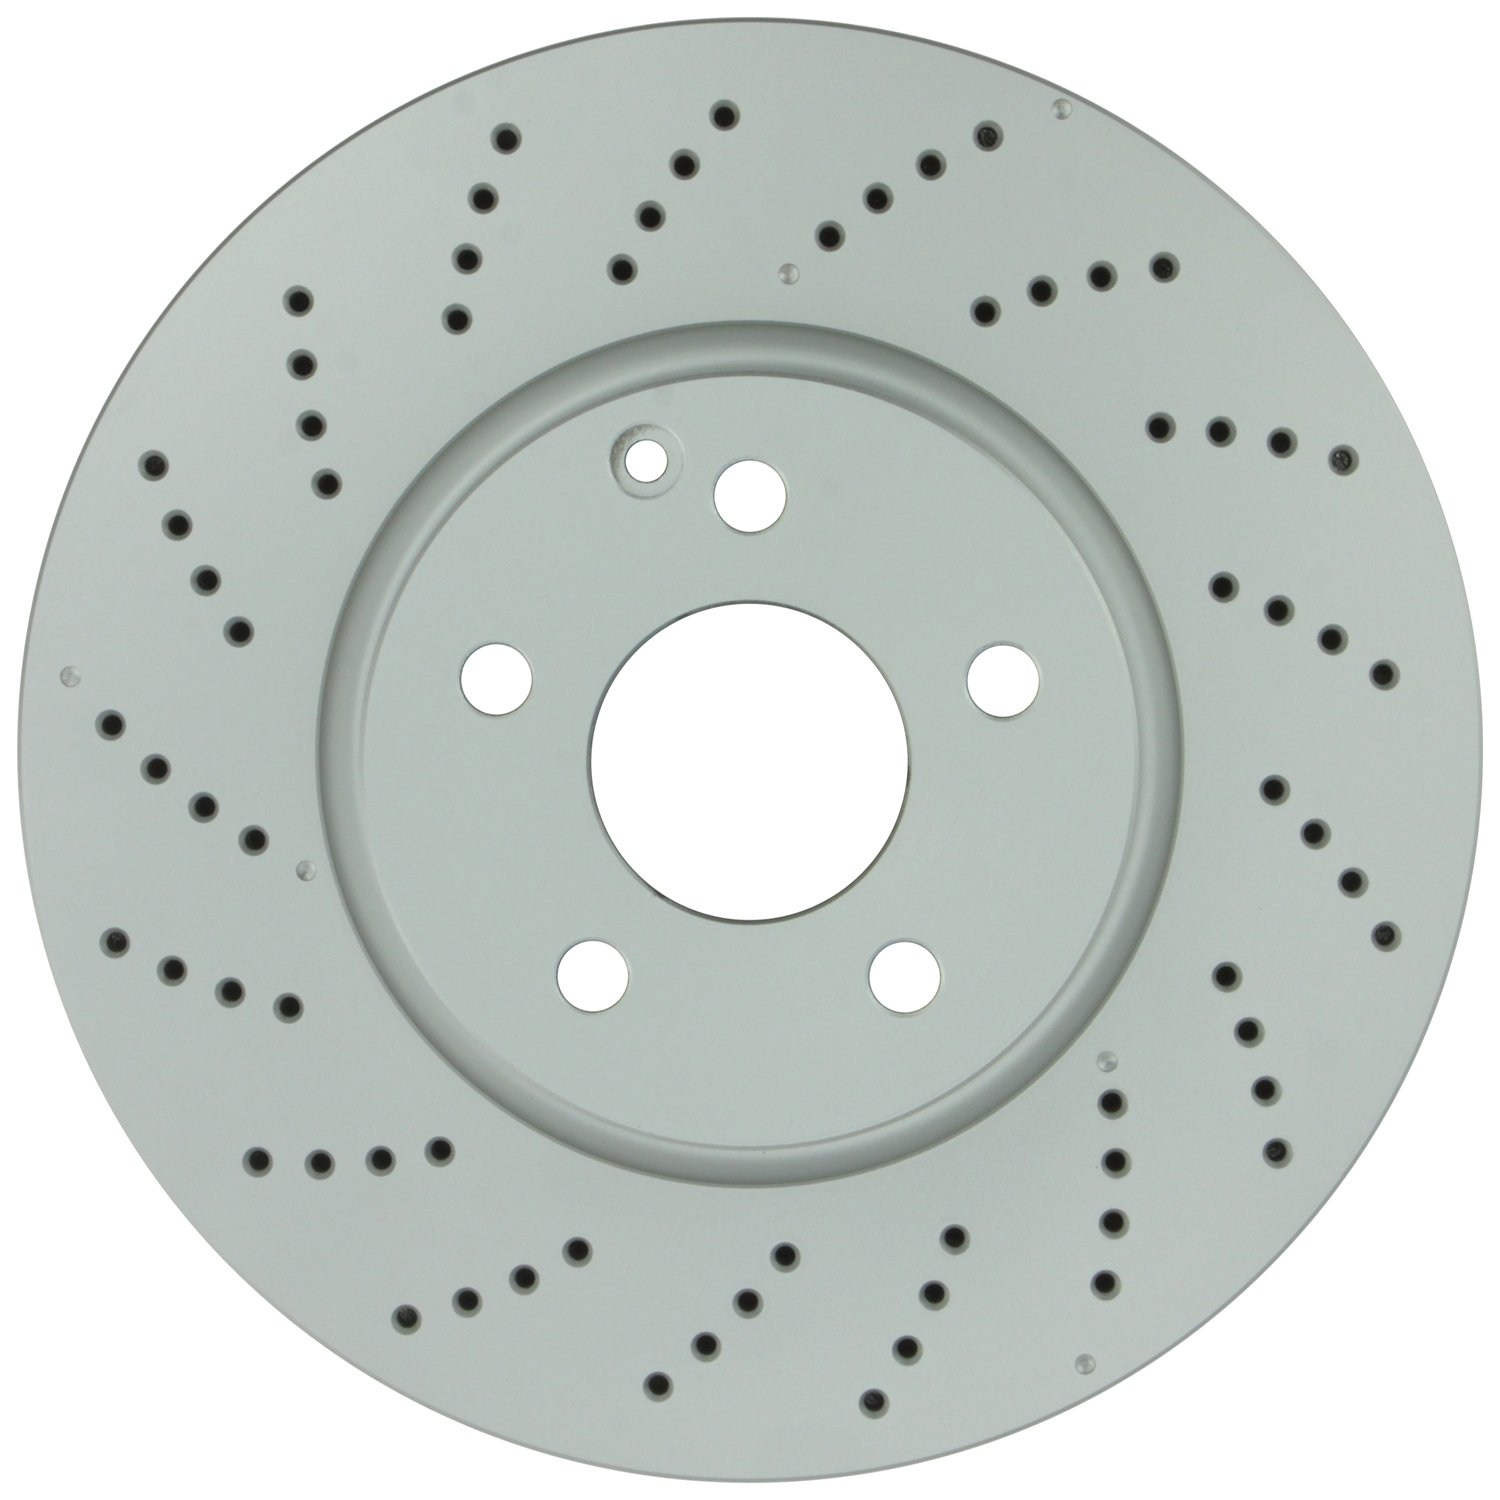 Bosch 36010983 QuietCast Premium Disc Brake Rotor